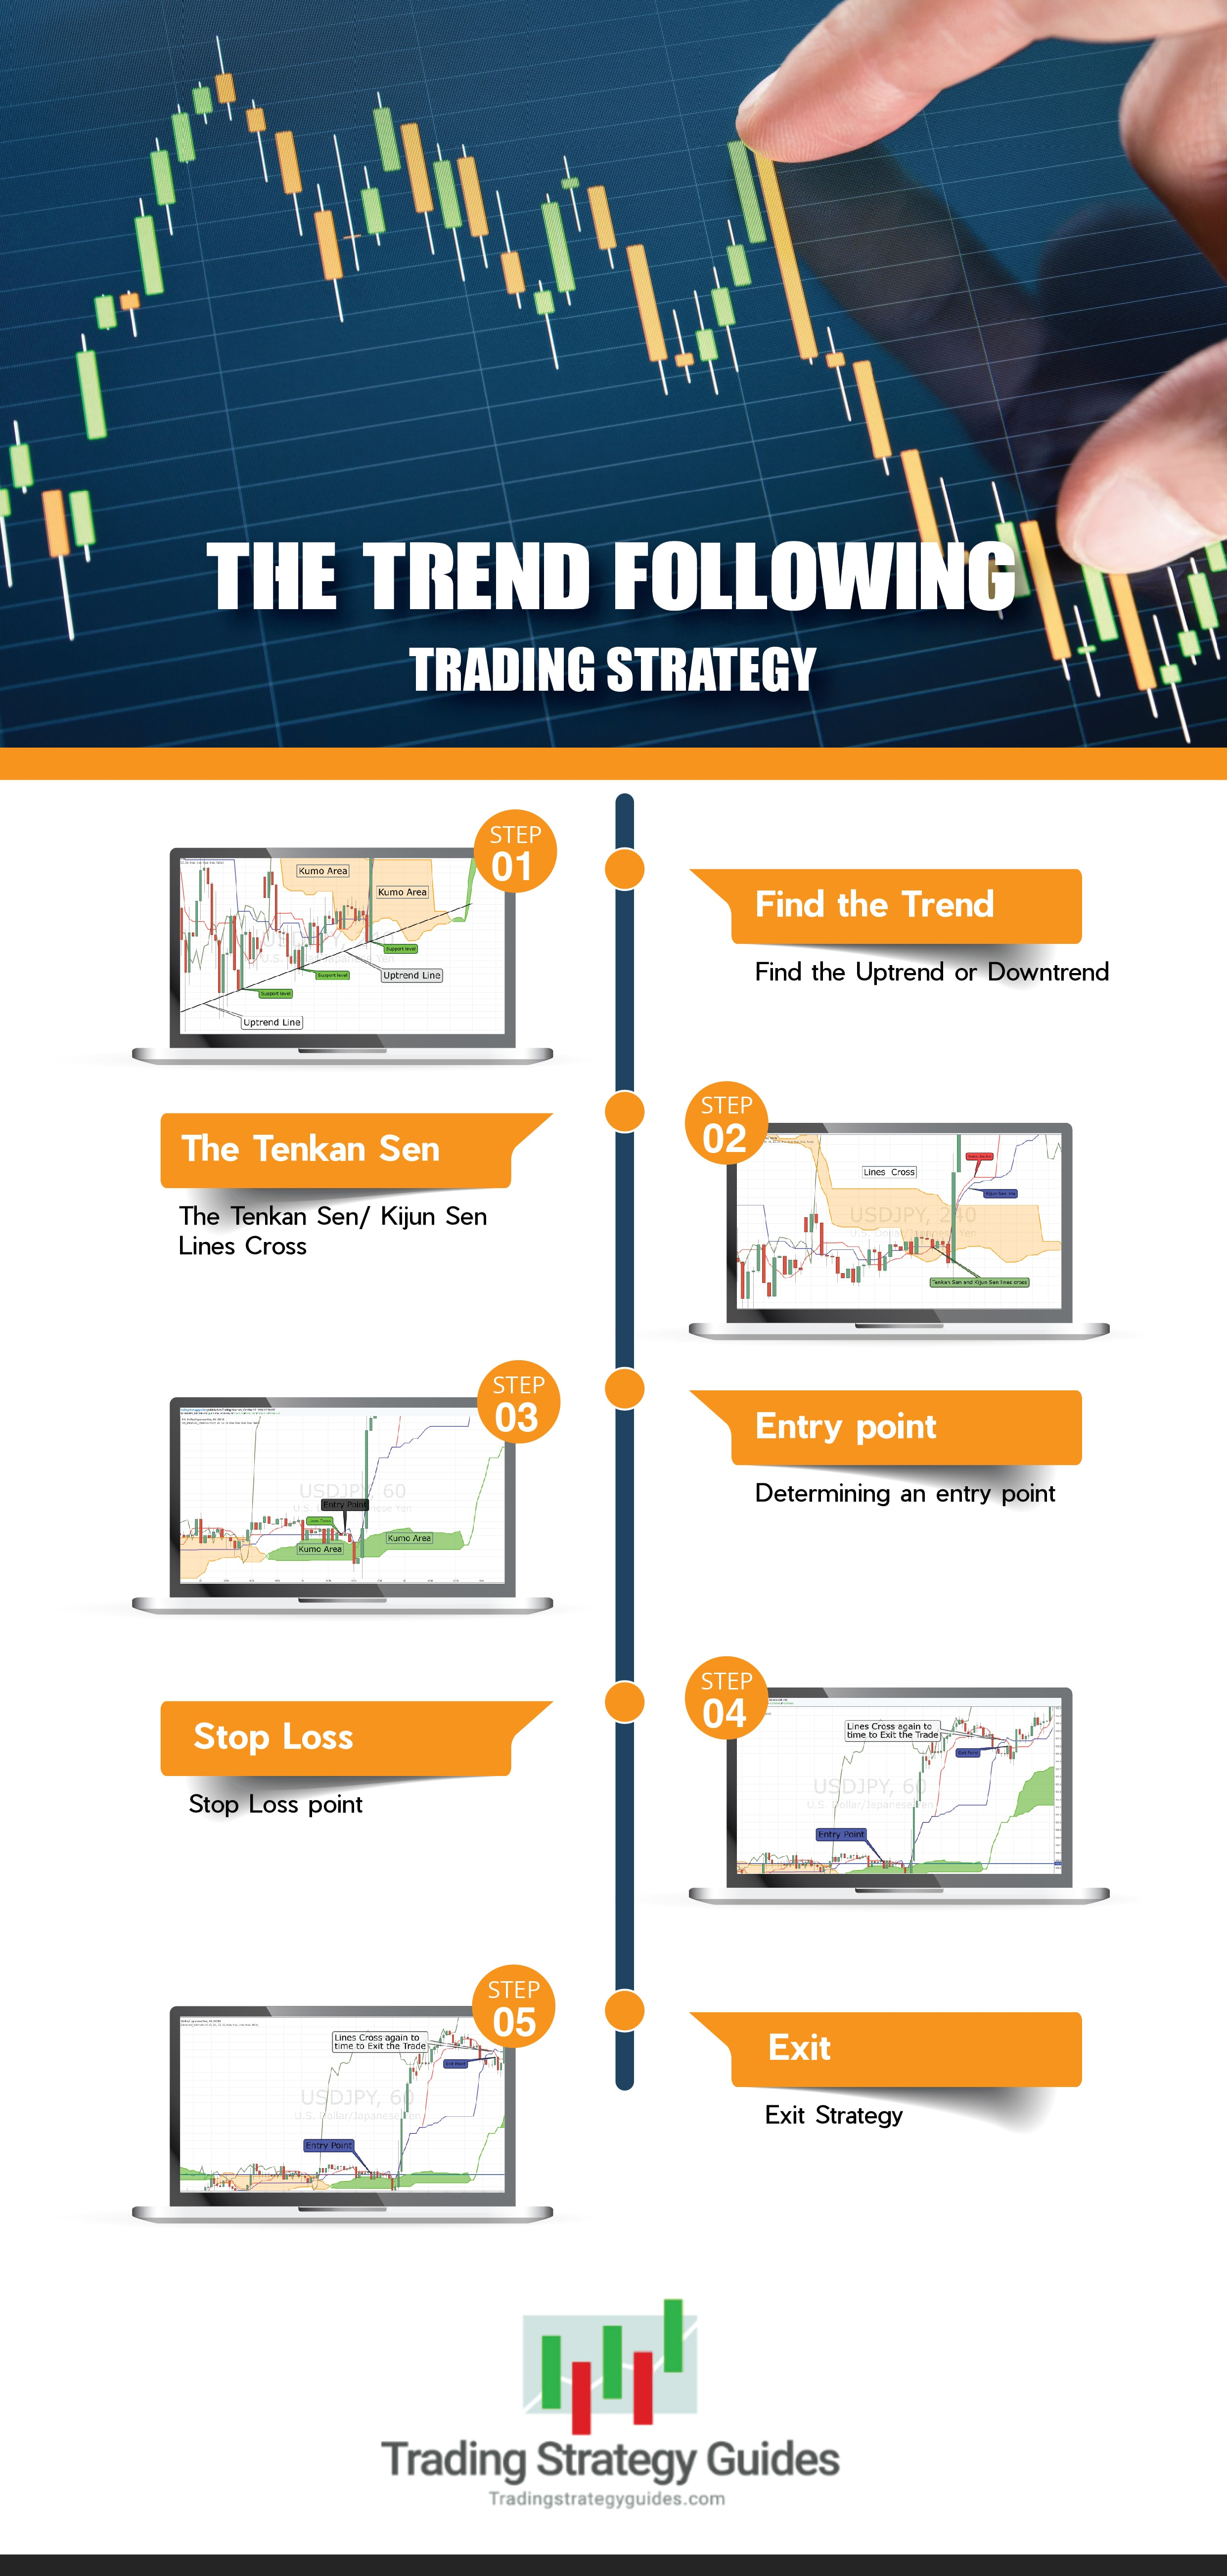 the trend following trading strategy graphic